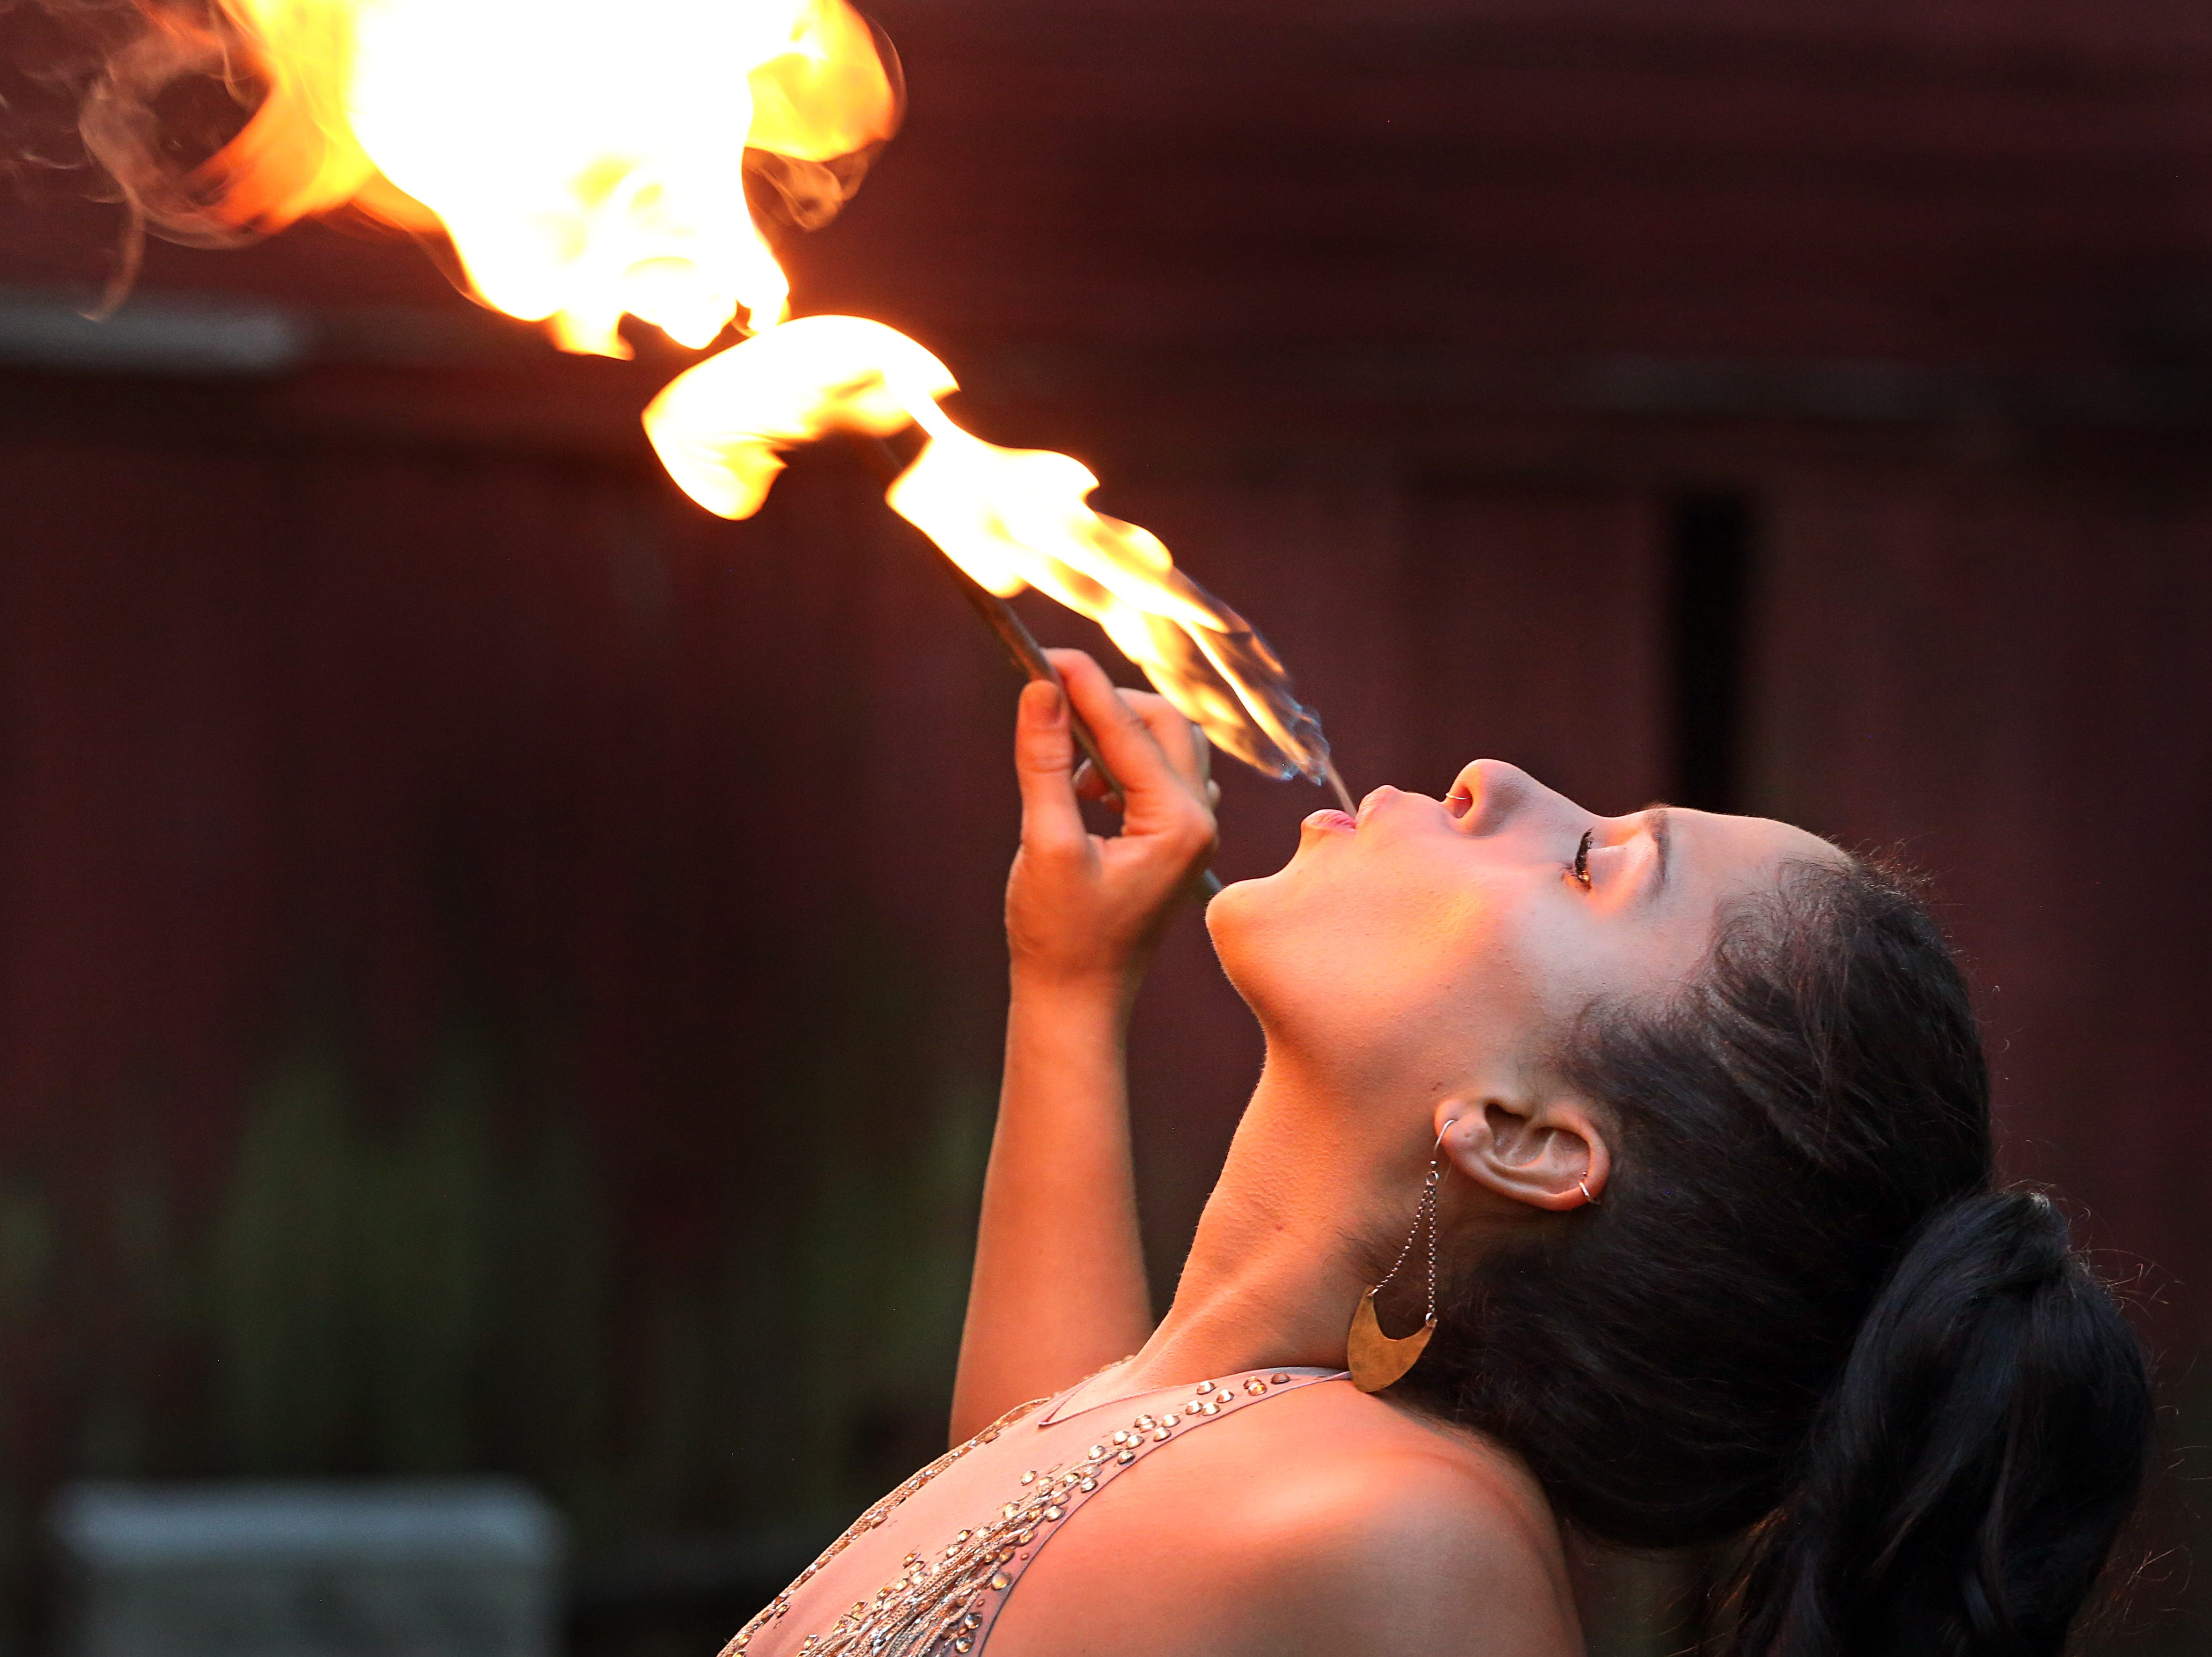 """""""It's special for me to be involved in something that's part of our community,"""" states Brittny Popolizio of Valley Cottage who will be performing at Rockland County Pride Center's gala. Professional hula hoop and fire performer Popolizio shows of her skills at her home in Valley Cottage Oct. 1, 2018."""